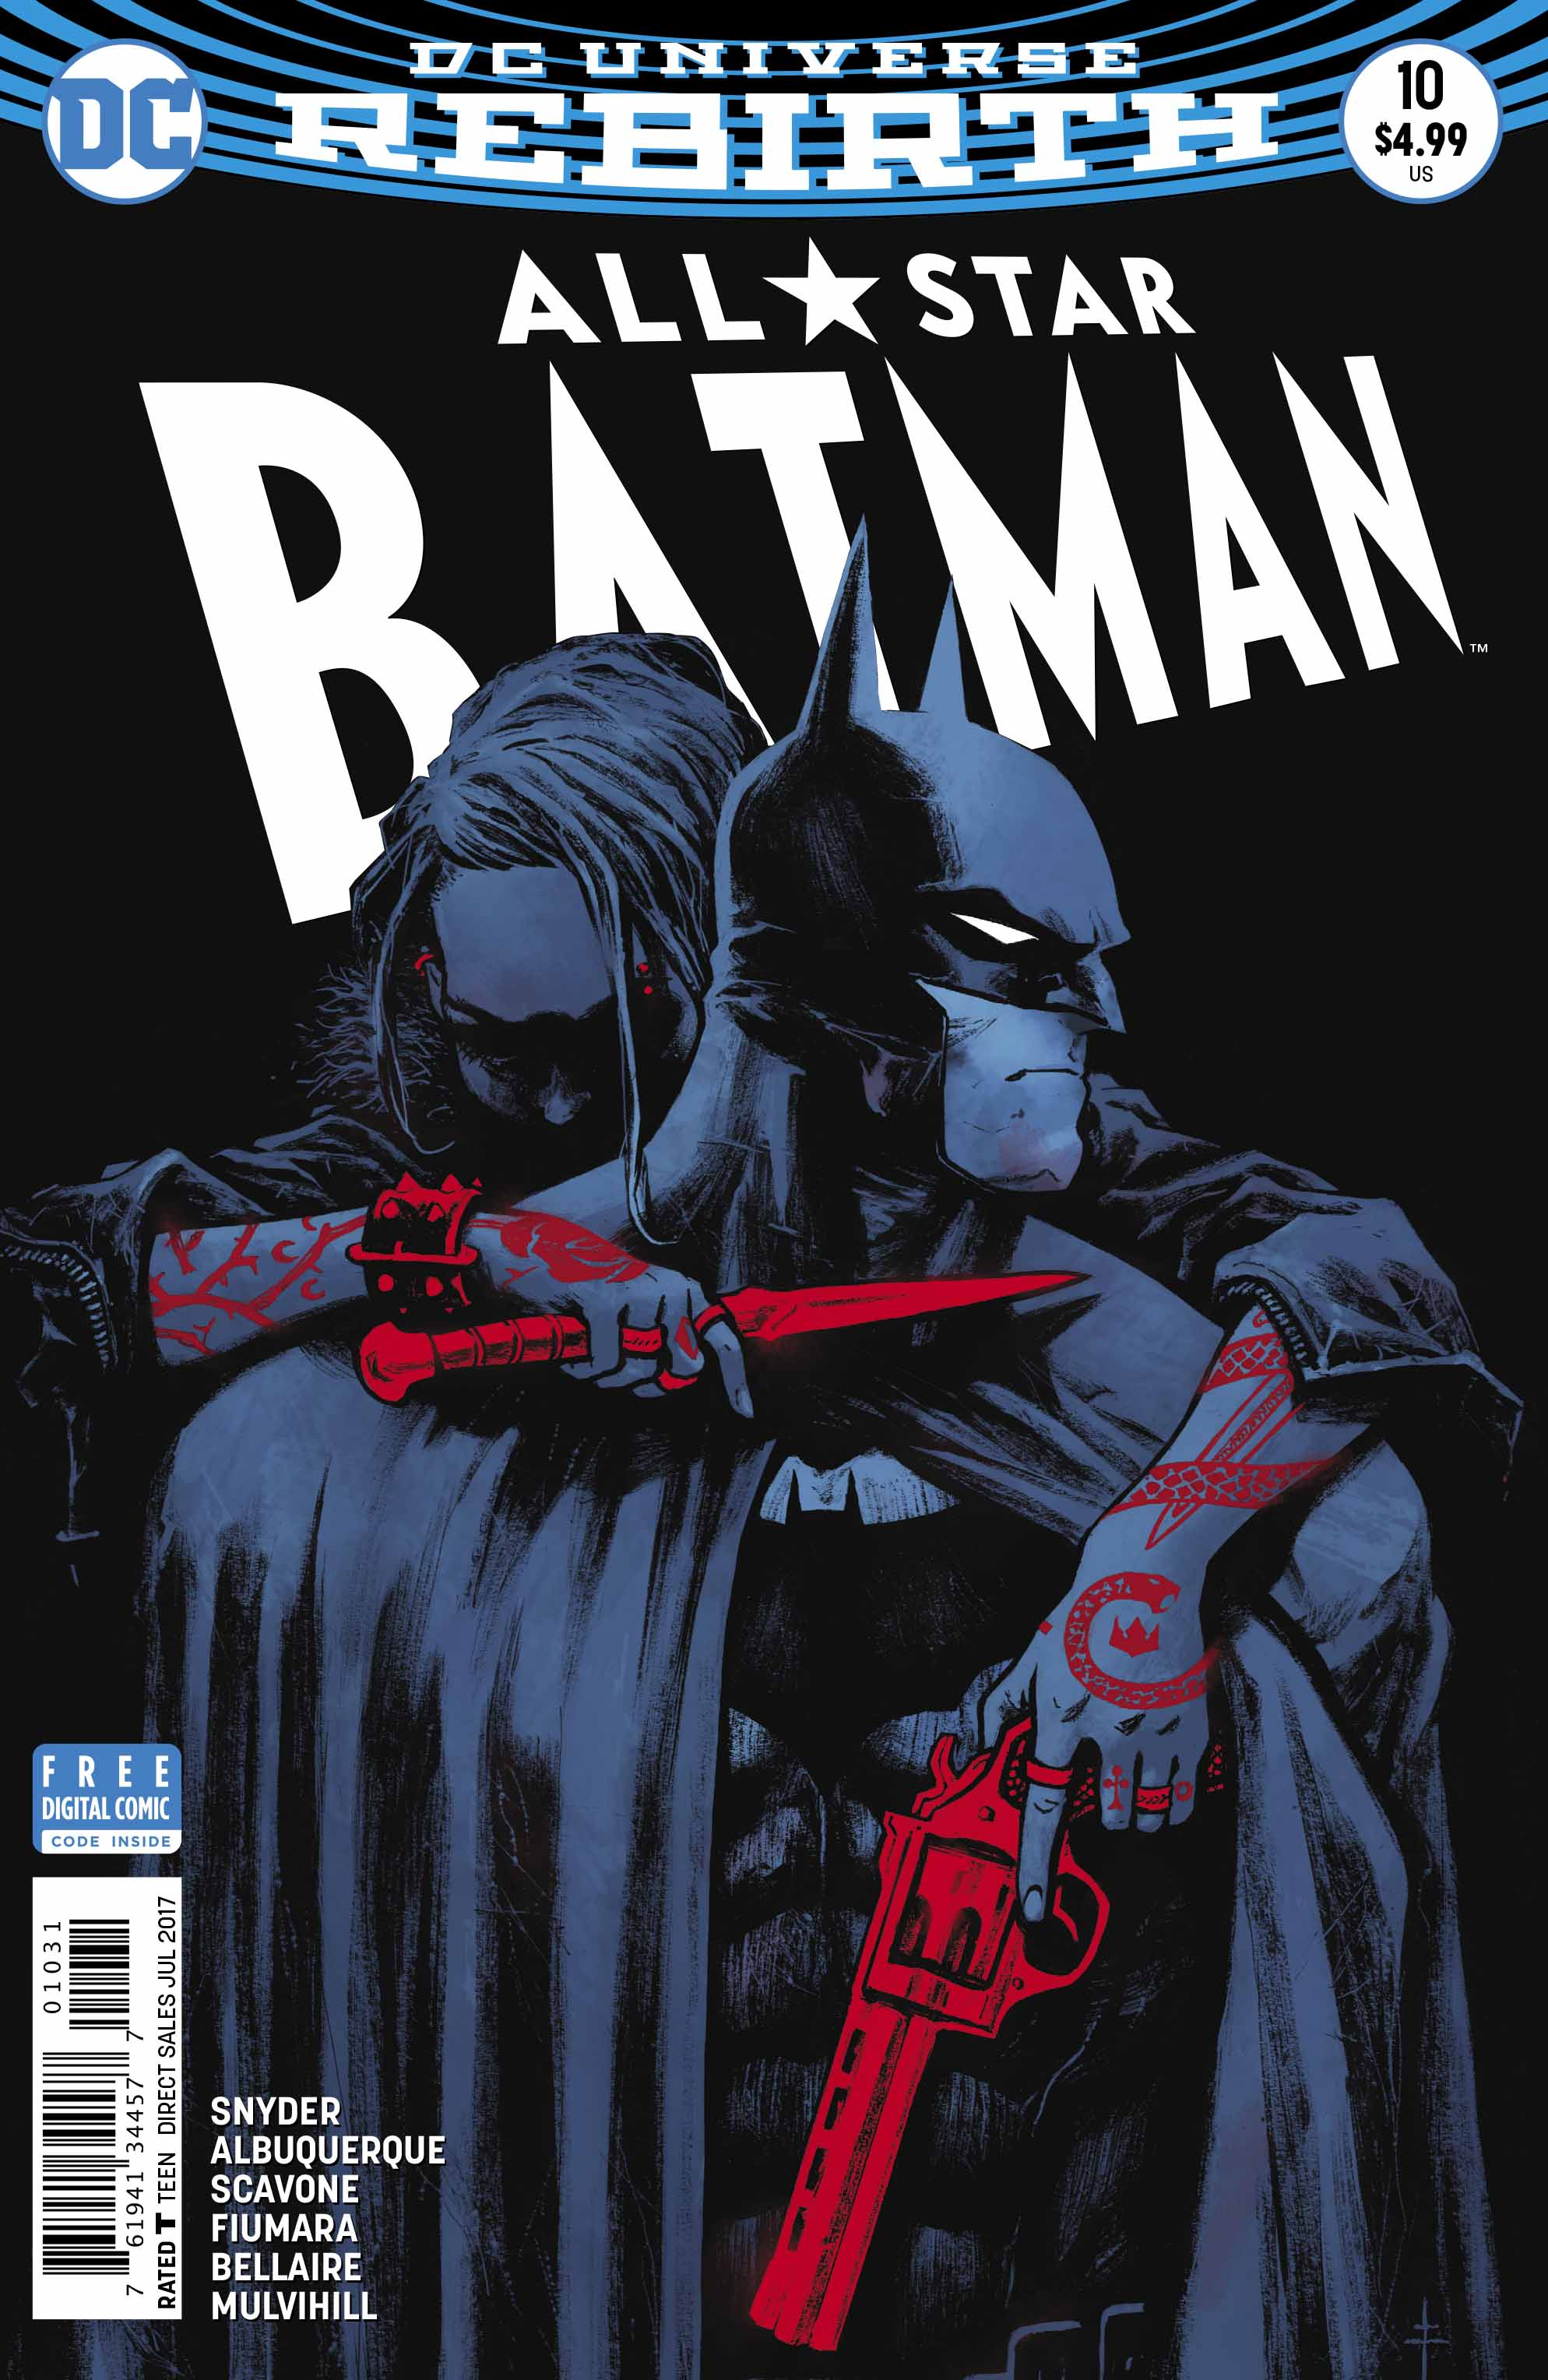 All-Star Batman #10 Review